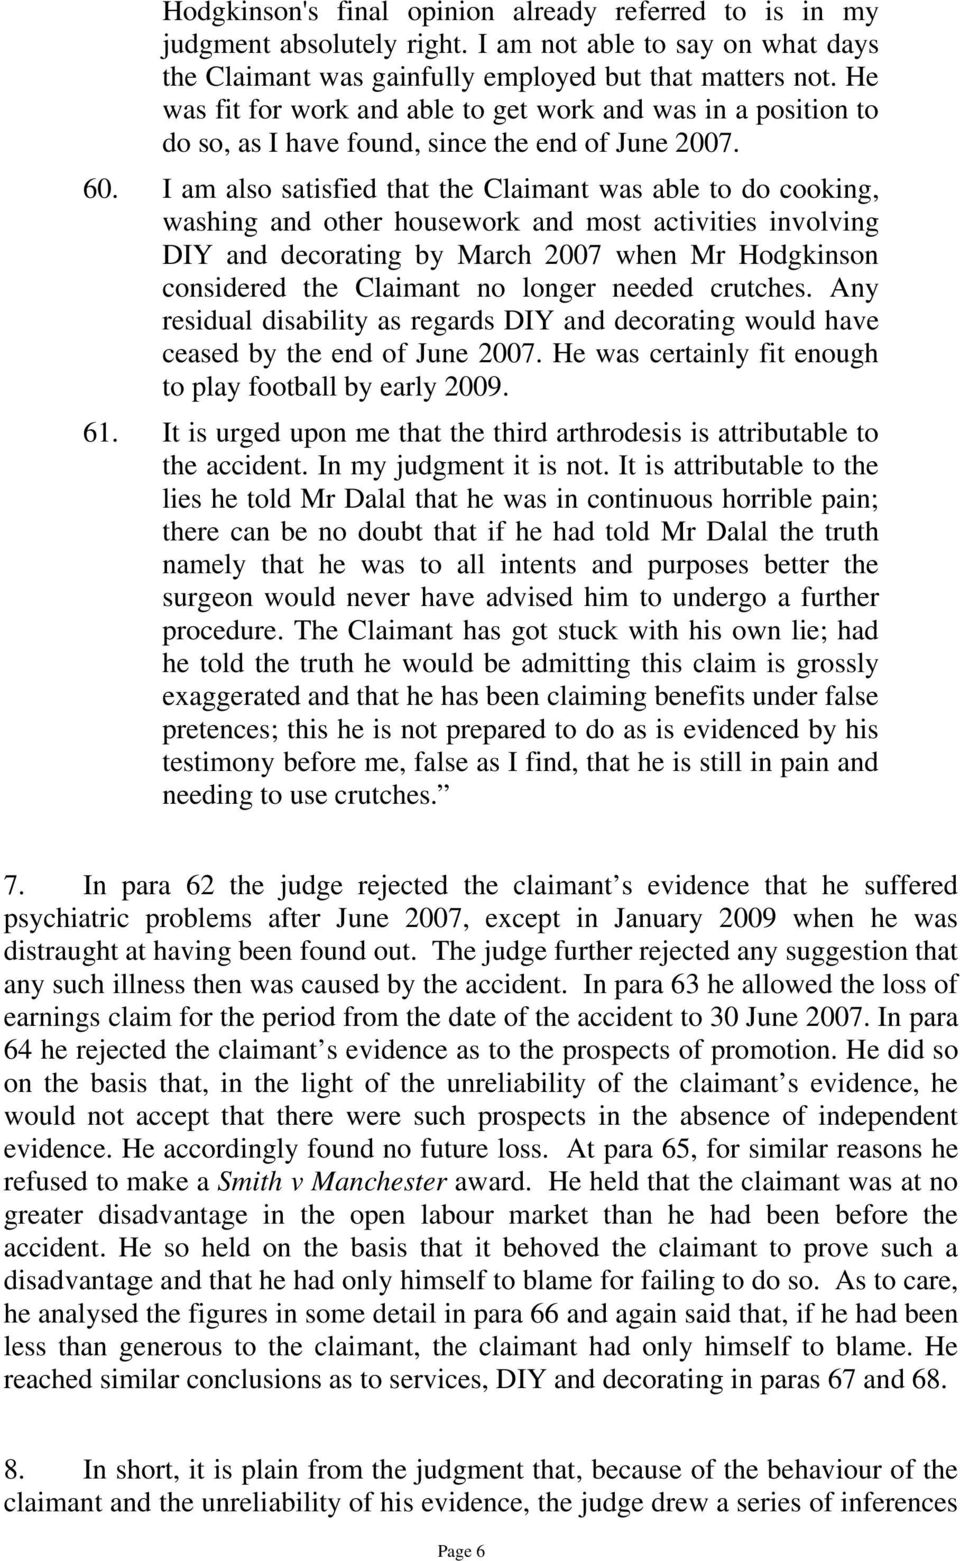 I am also satisfied that the Claimant was able to do cooking, washing and other housework and most activities involving DIY and decorating by March 2007 when Mr Hodgkinson considered the Claimant no